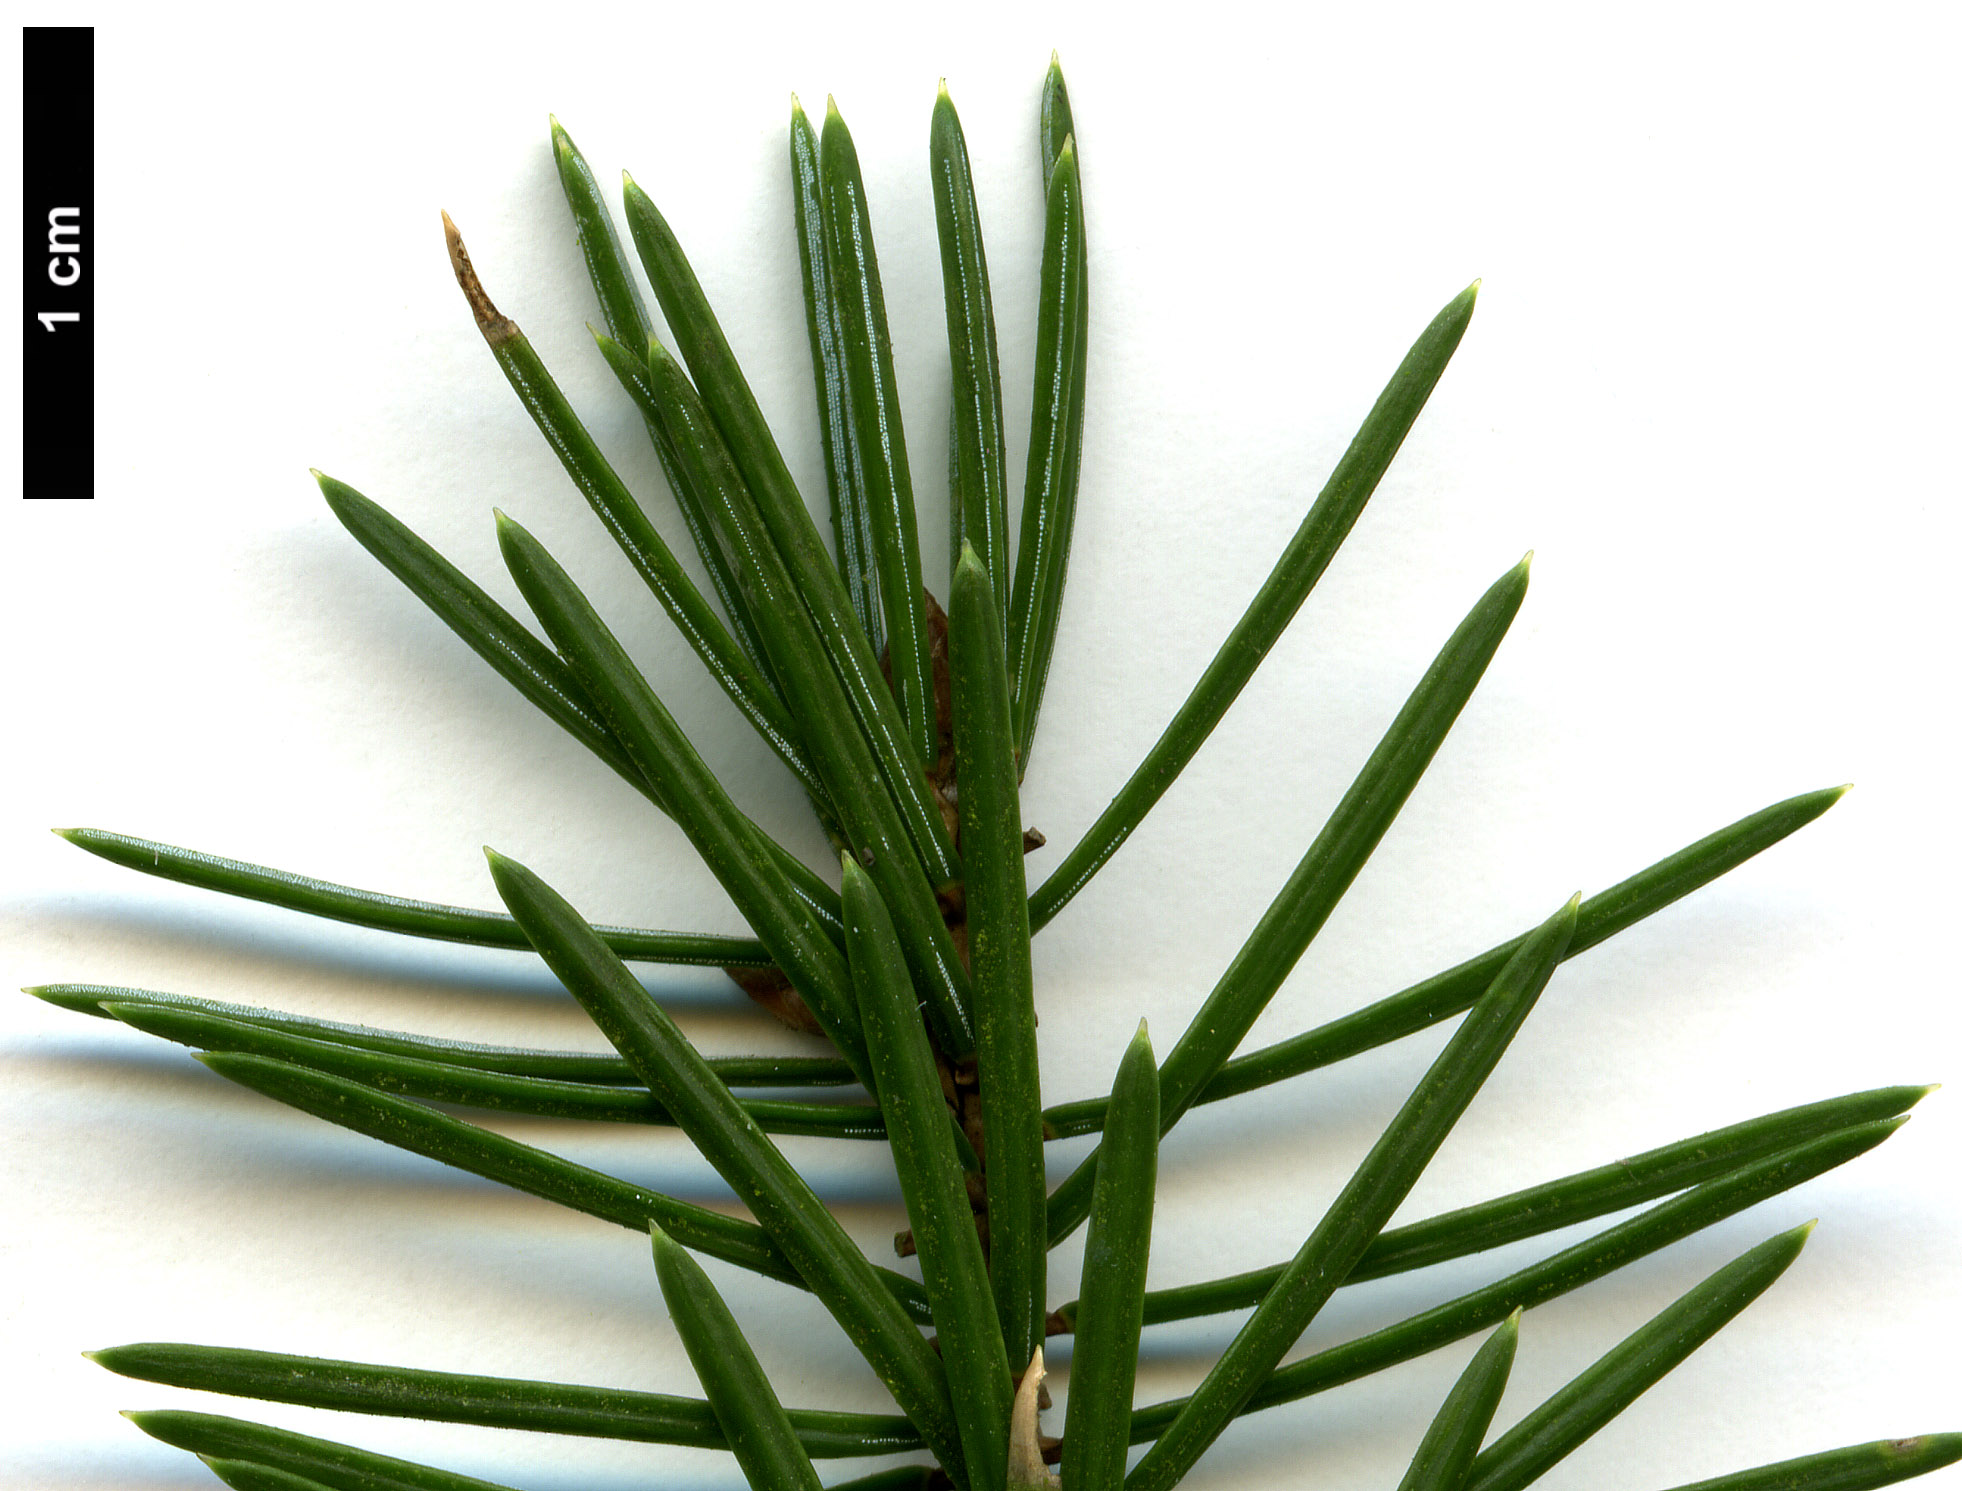 High resolution image: Family: Pinaceae - Genus: Picea - Taxon: sitchensis